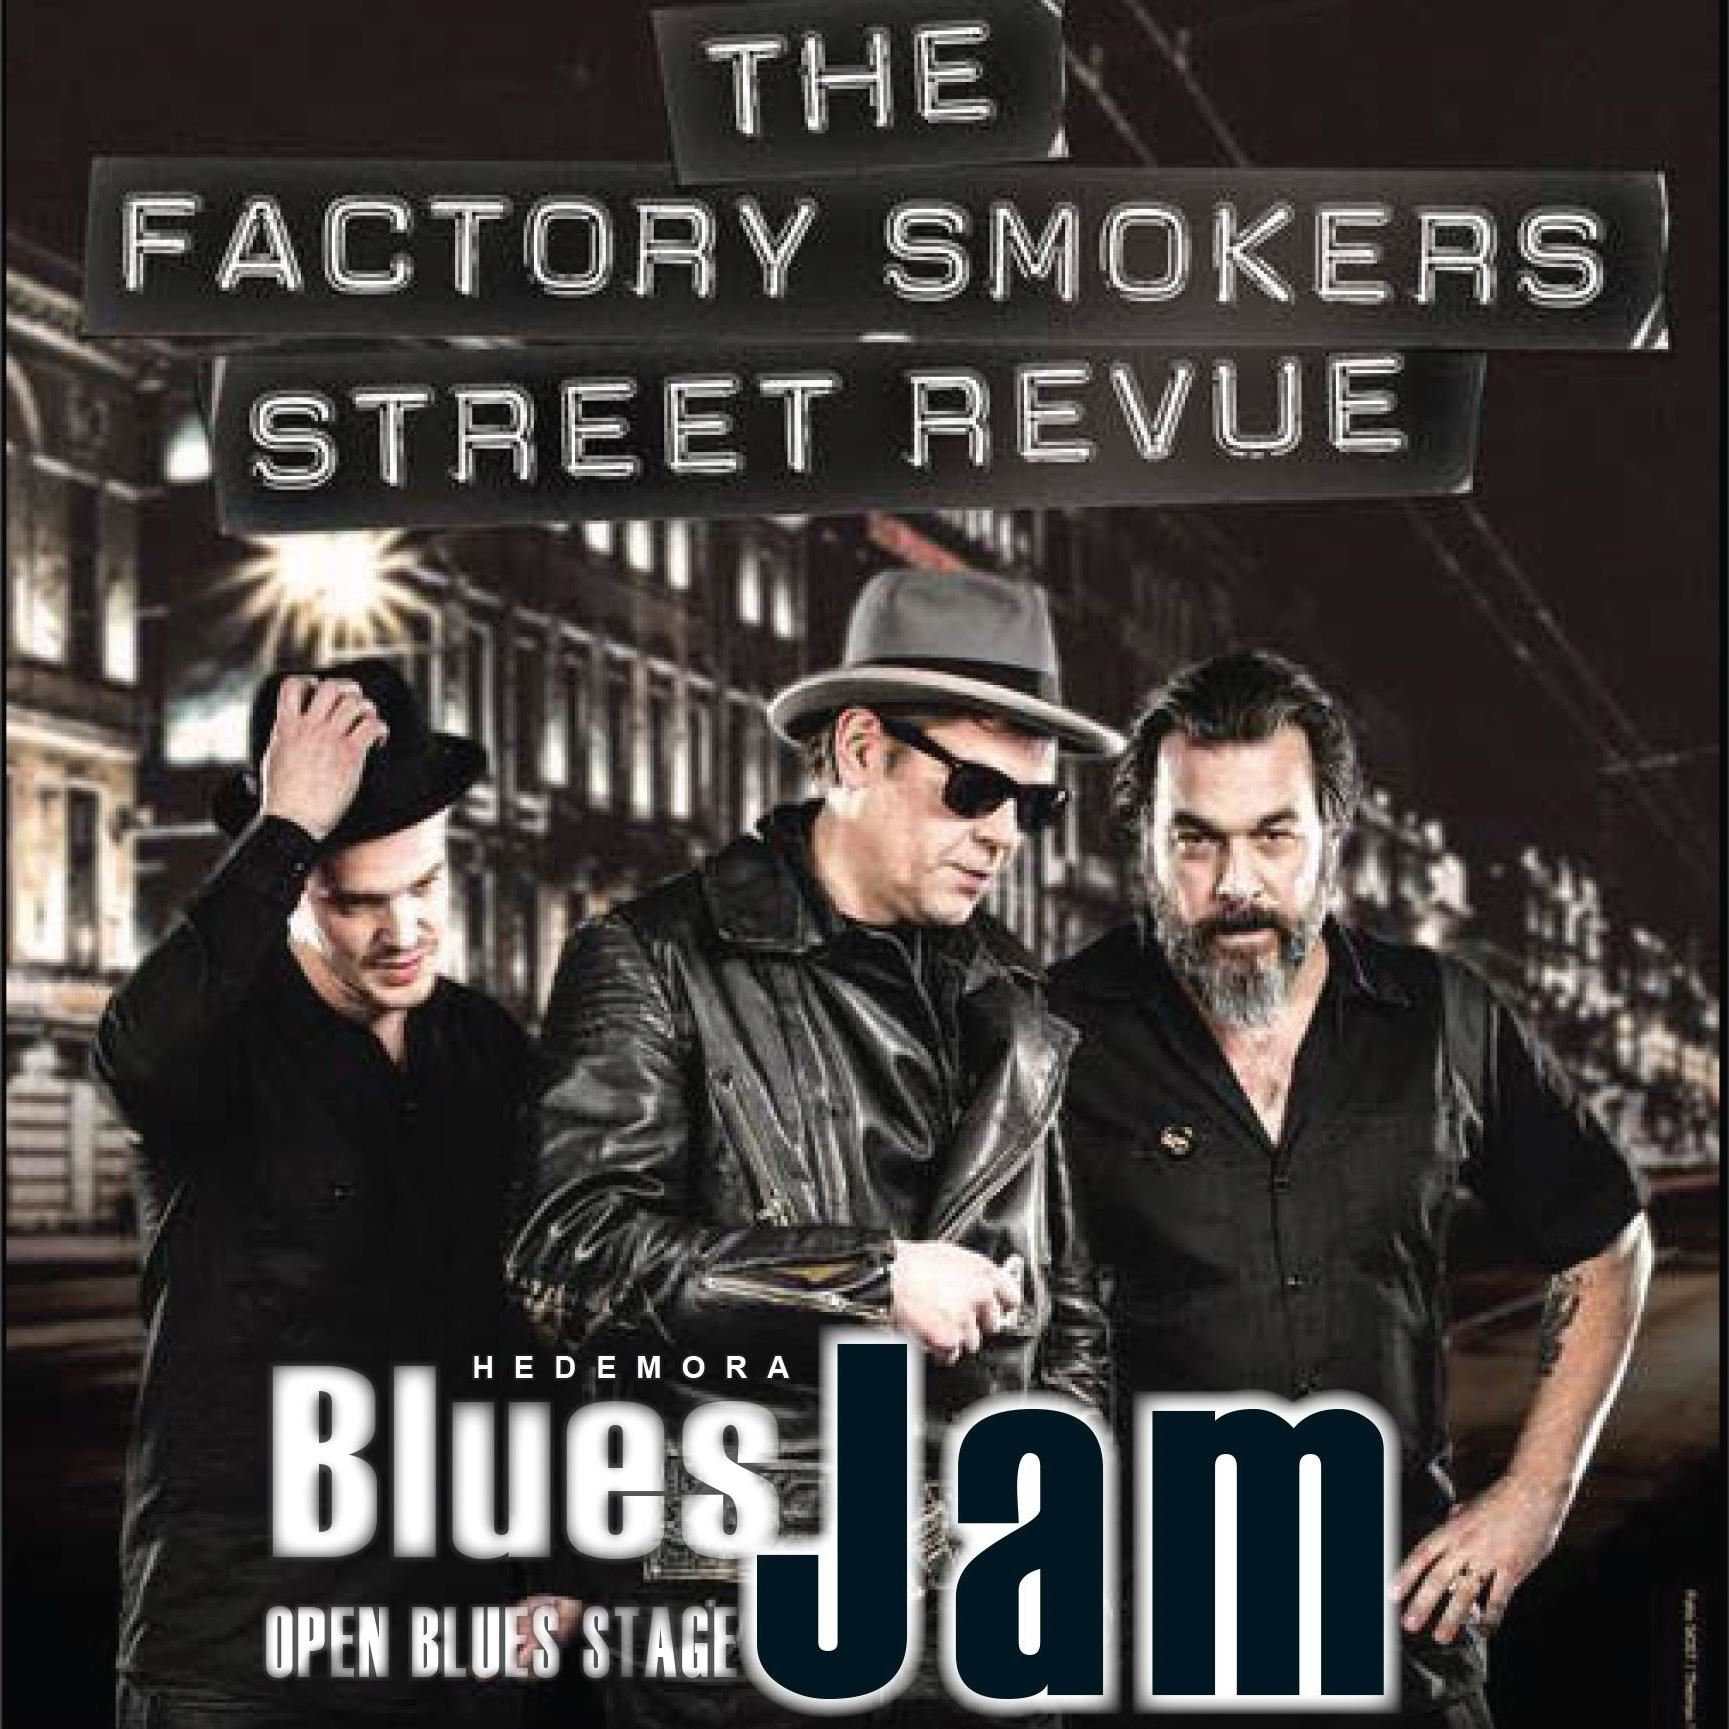 Hedemora Blues Jam  + The Factory Smokers Street Revue